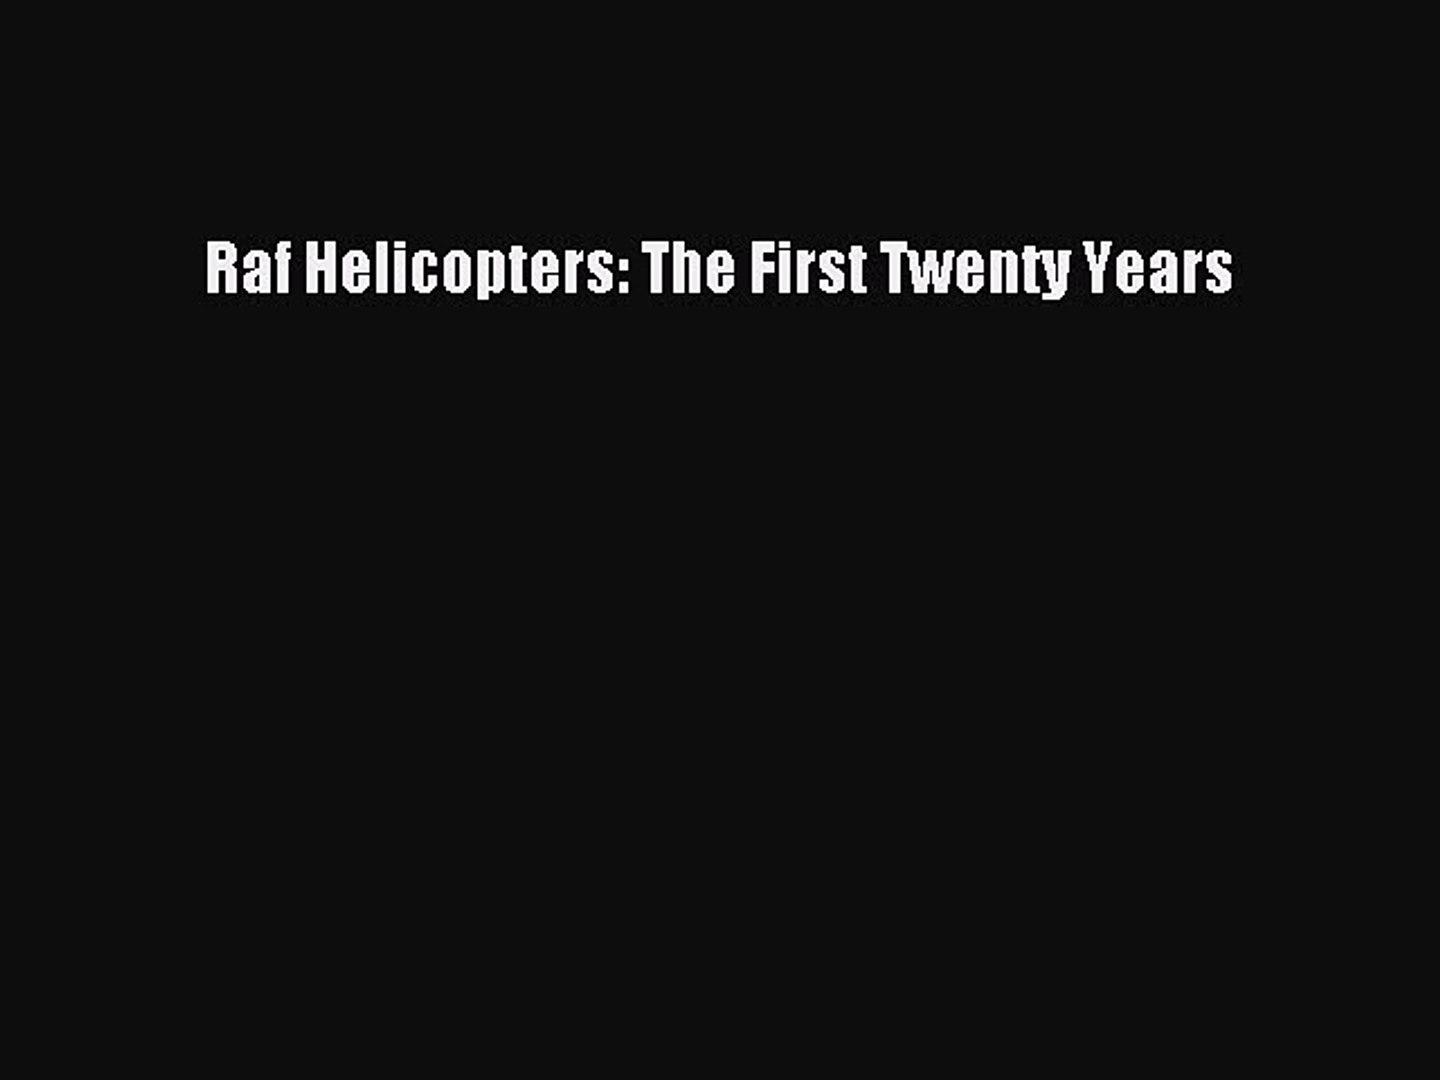 [Read Book] Raf Helicopters: The First Twenty Years  EBook